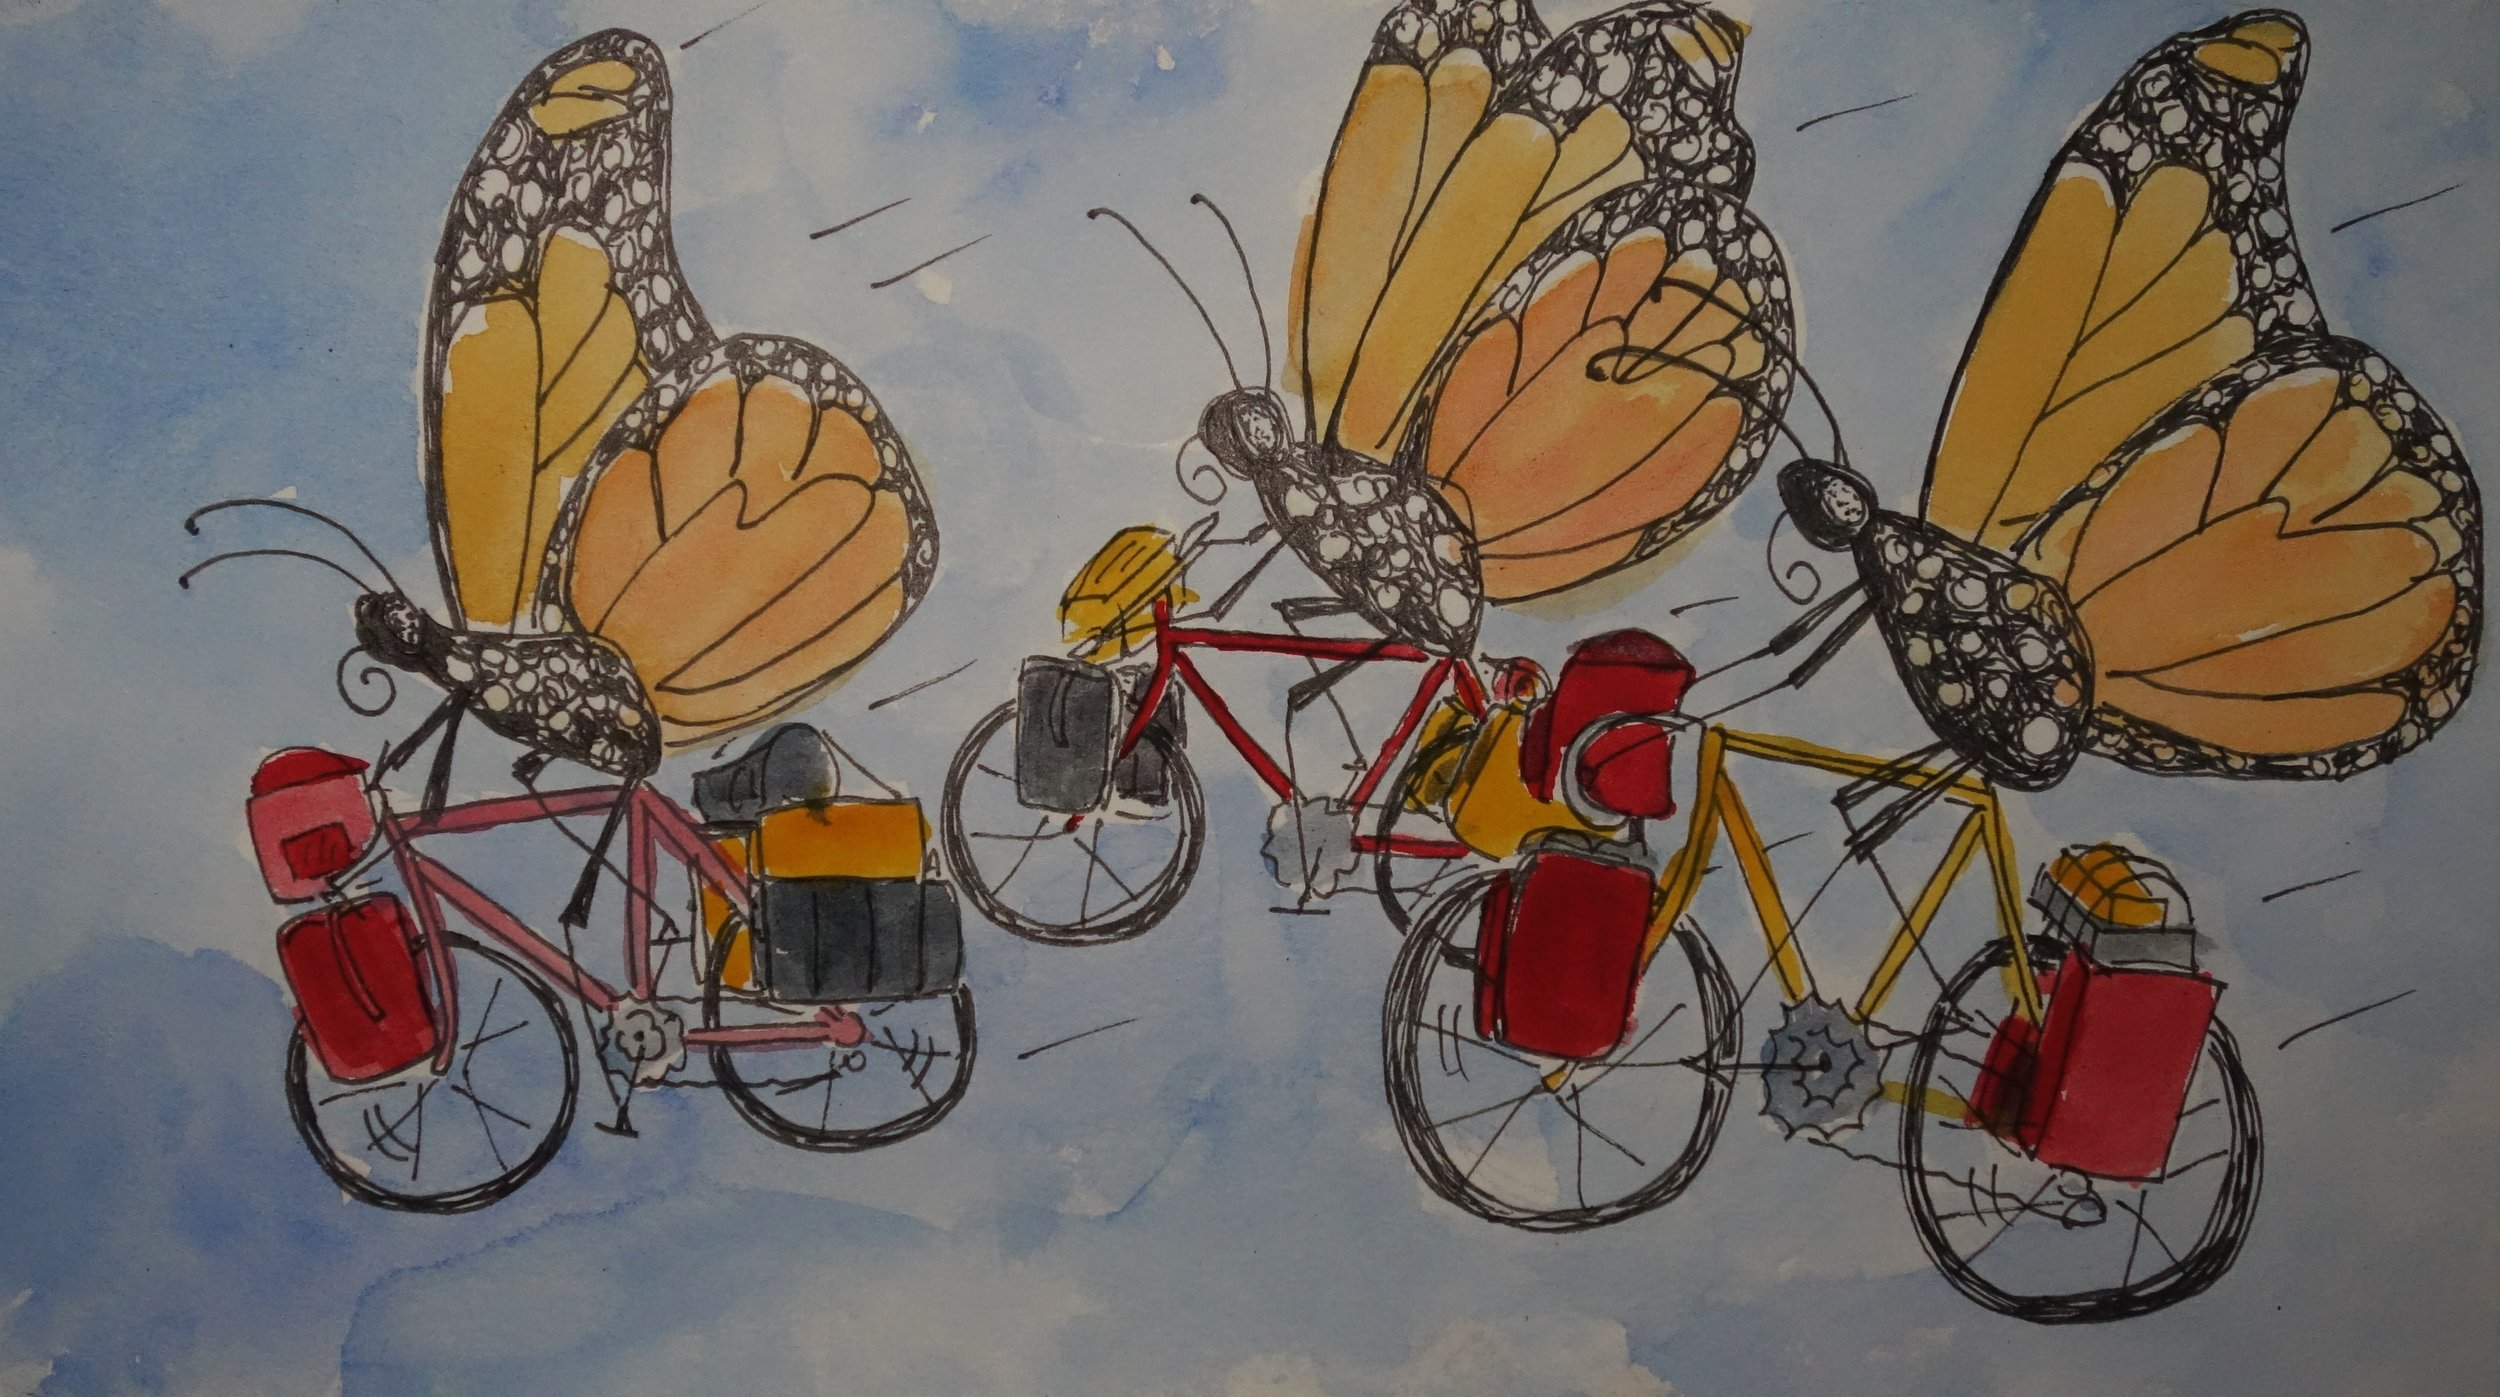 A. I biked 10,201 miles with the migrating monarchs. My goal was to be a voice for the monarchs and see the world they see.